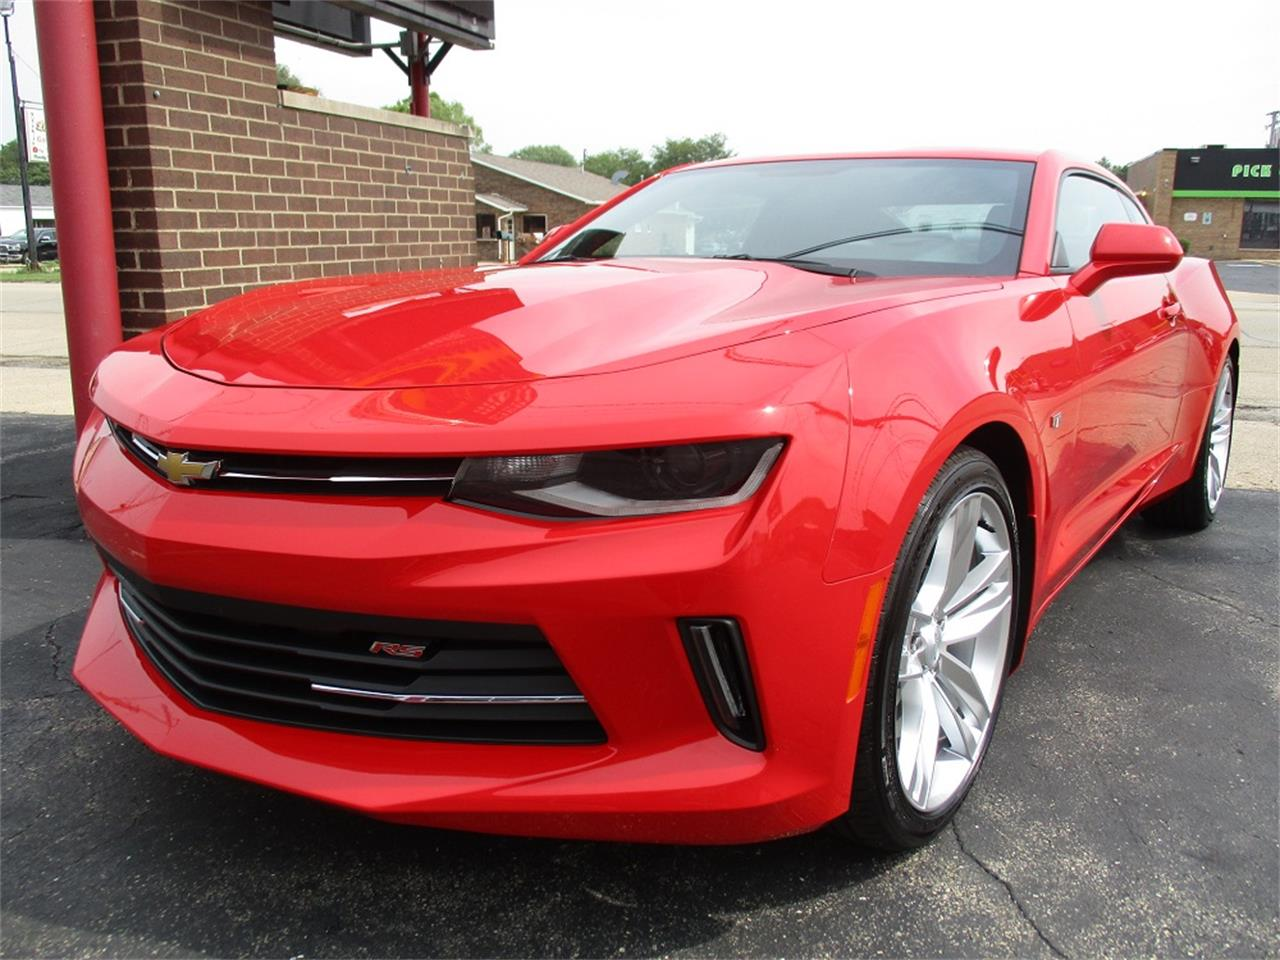 Large Picture of '16 Chevrolet Camaro RS - $24,900.00 Offered by Sterling Motors Inc. - QYQM